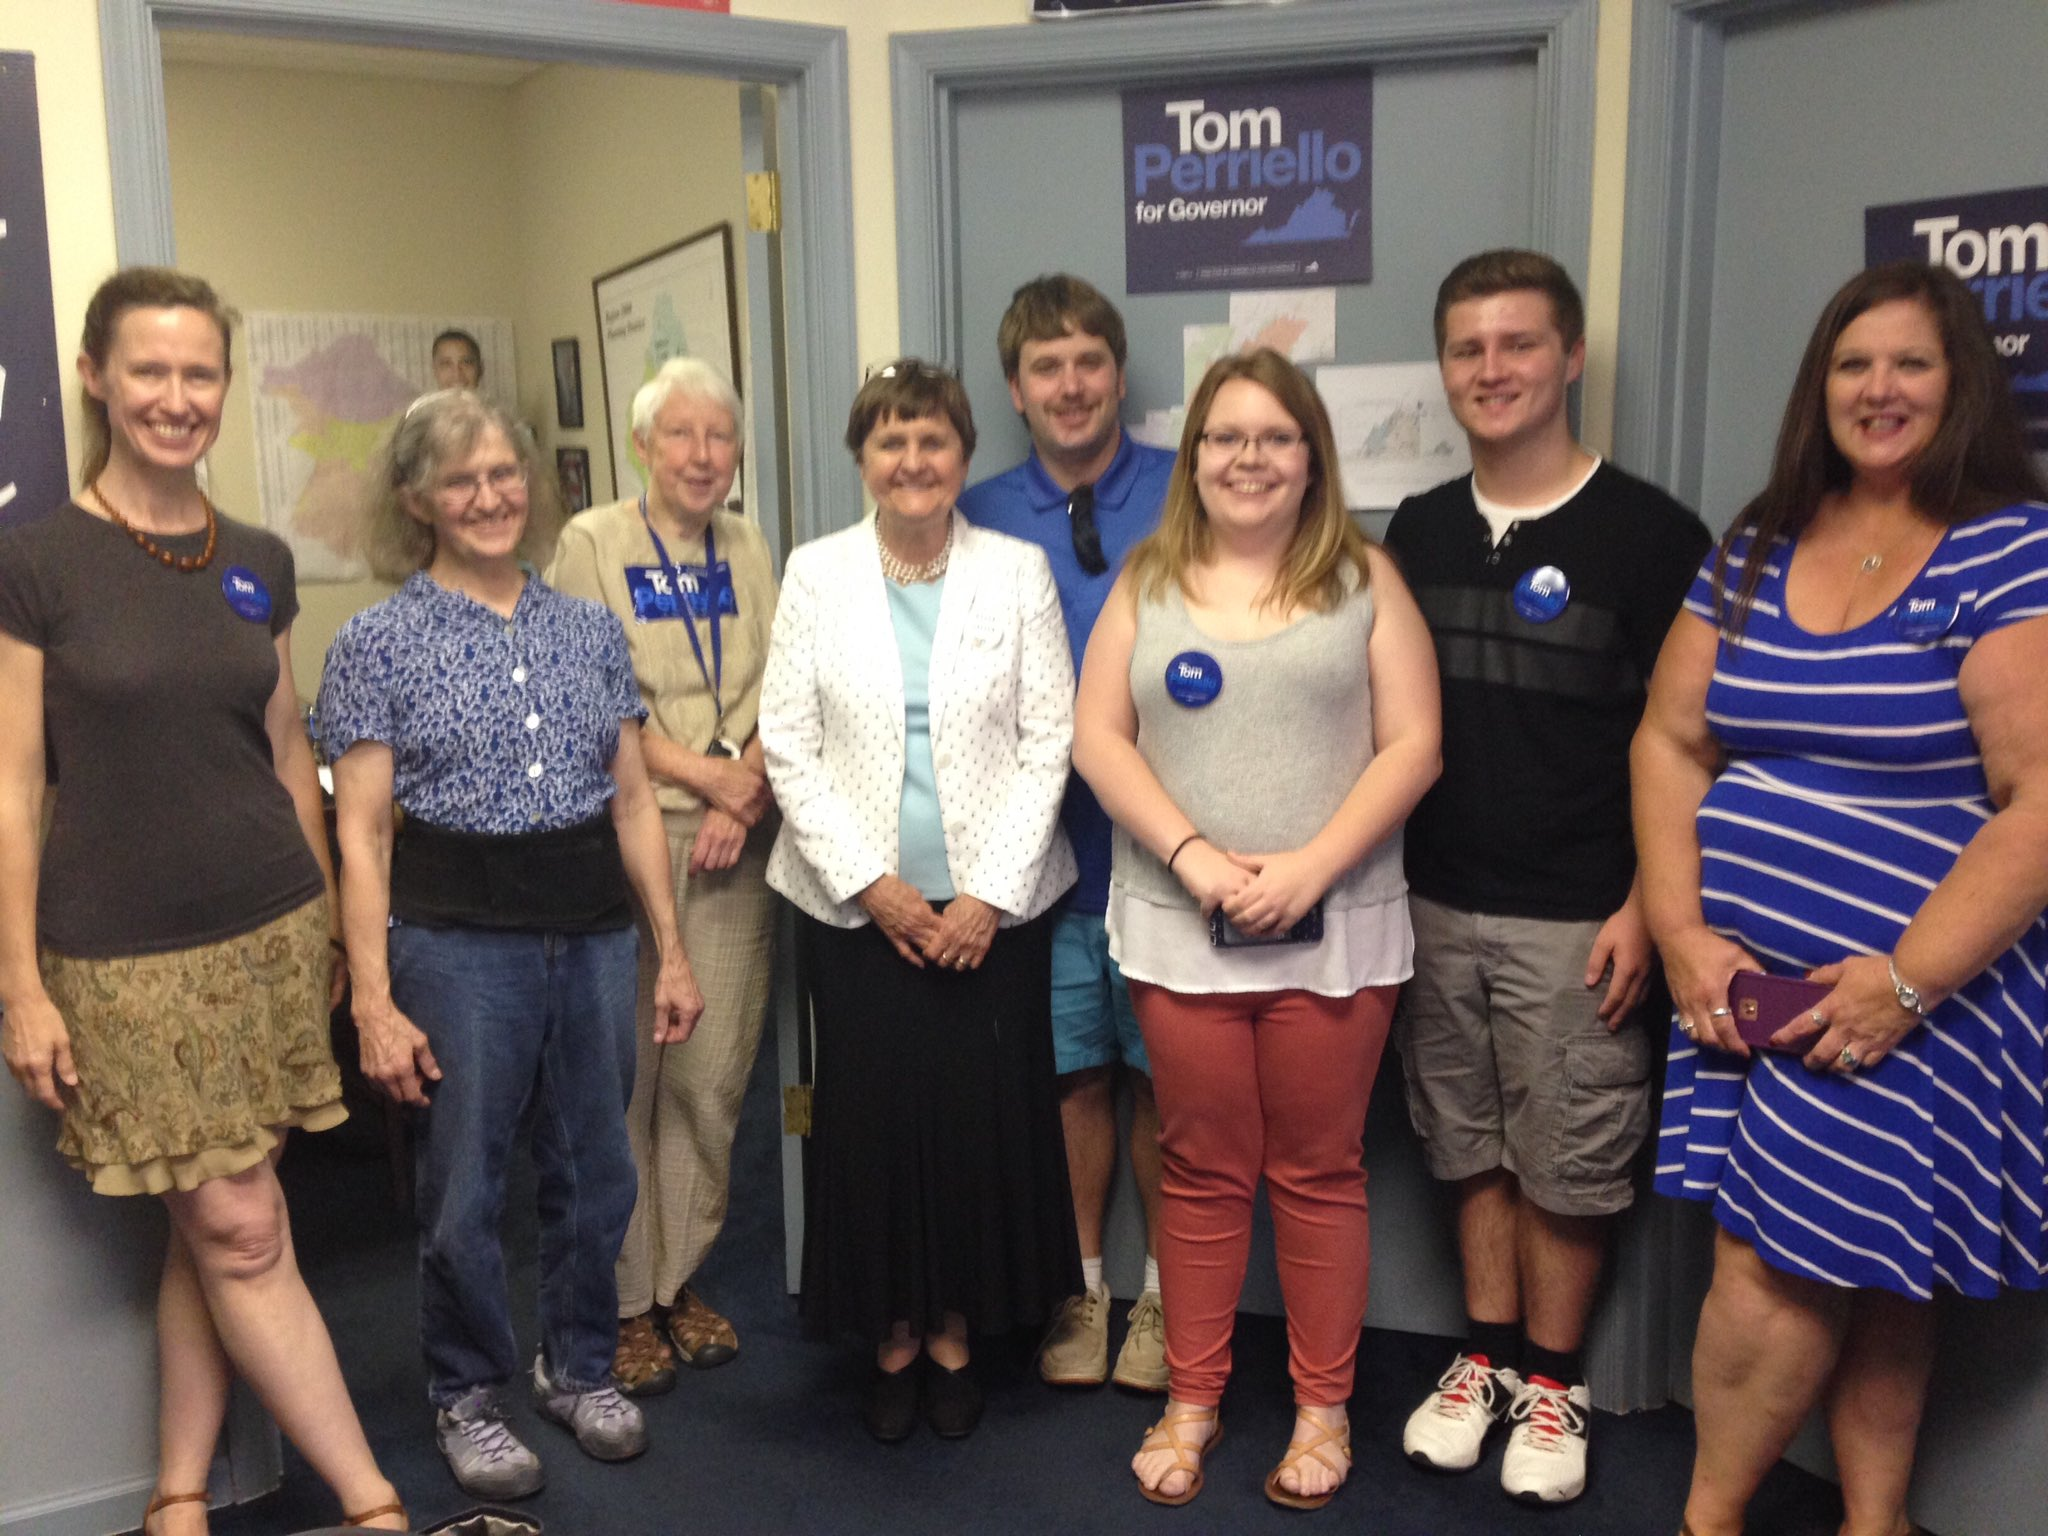 Launching a canvass for @tomperriello in Lynchburg with our awesome volunteers! #GoTomGo #TomsMom https://t.co/bTwenX7Ftg